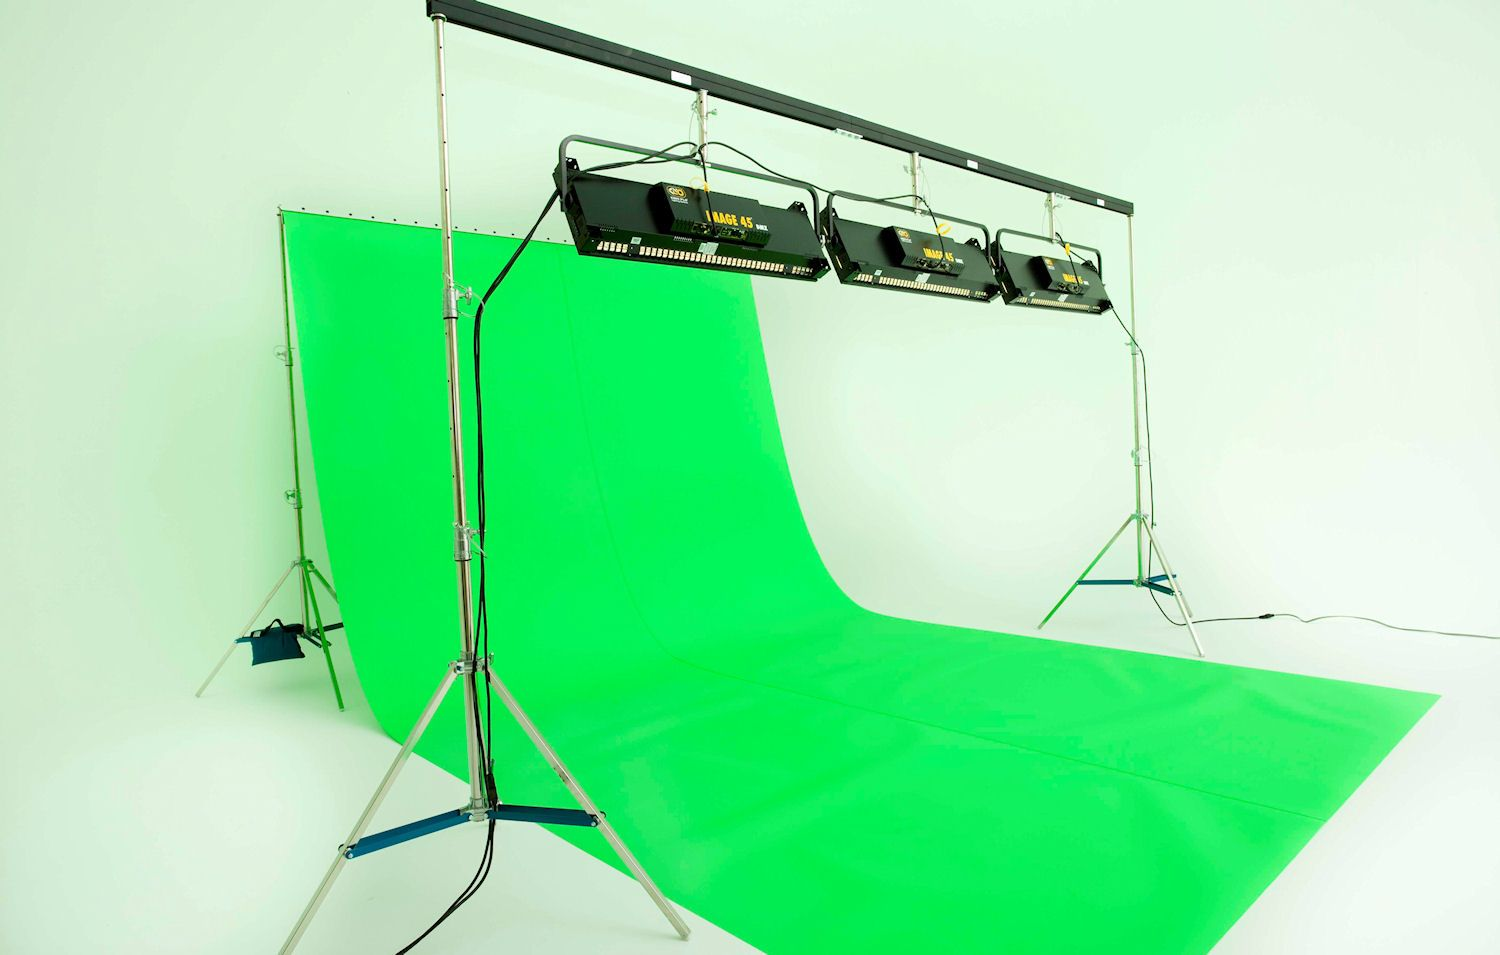 Filming With Green Screen Everything You Need To Know Infocus Film School